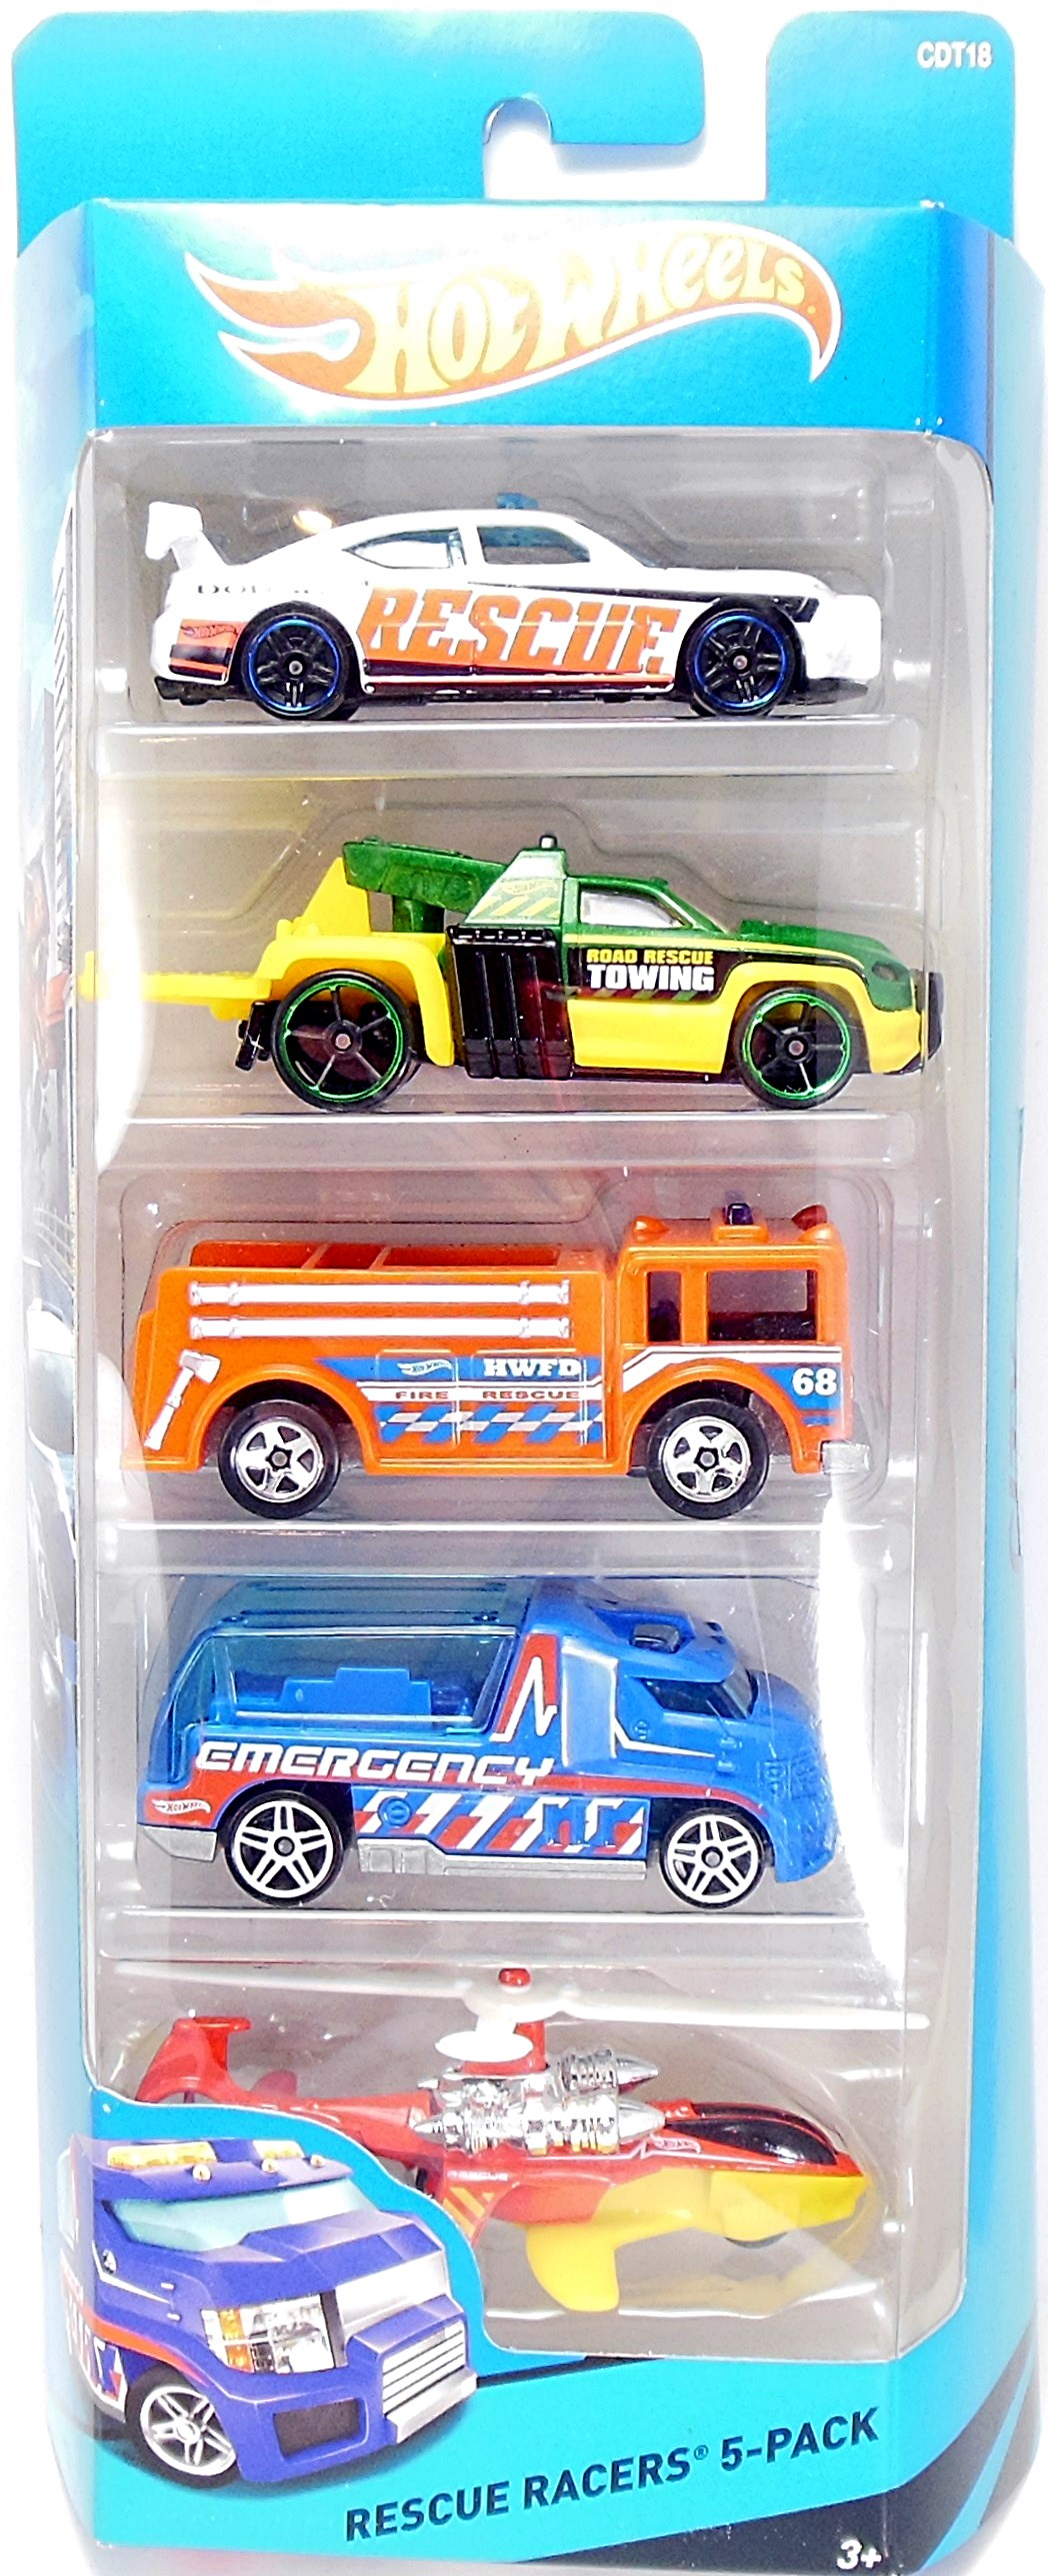 2015 5 Packs Hot Wheels Newsletter